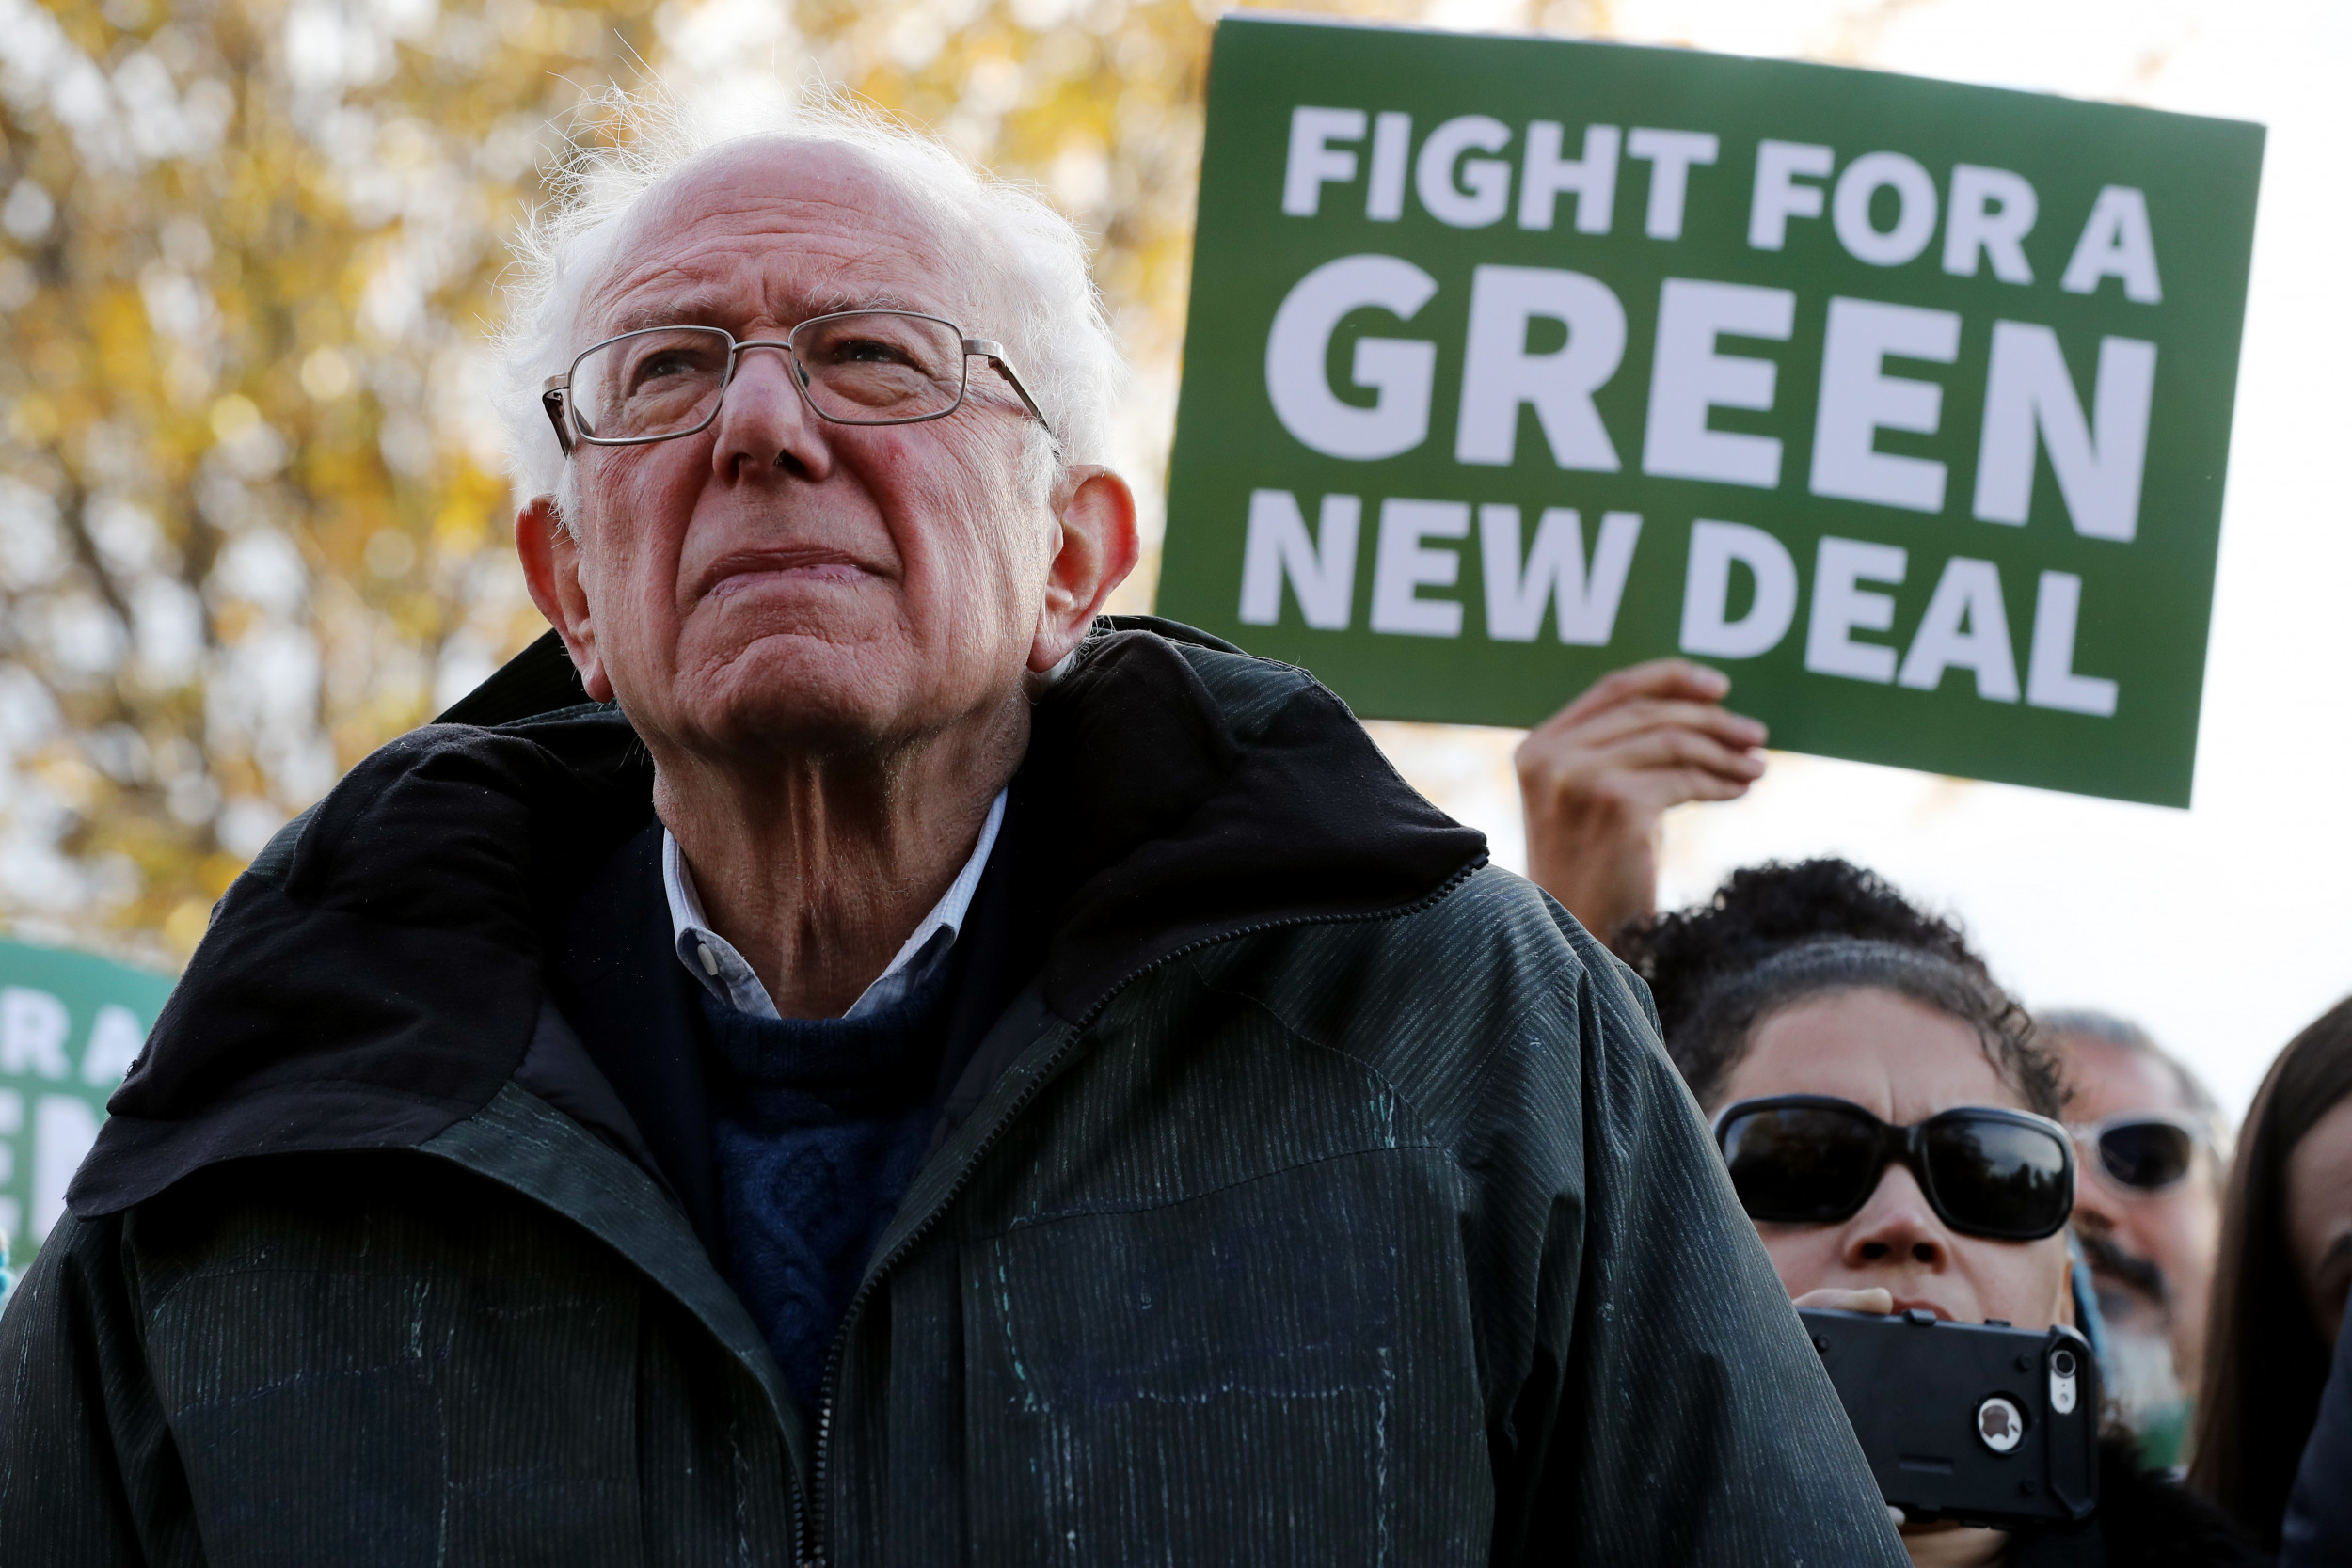 Bernie Sanders Will Have To Very Seriously Rethink Green New Deal If Elected Says Former White House Economist,House Exterior Paint Colors That Go With Red Brick